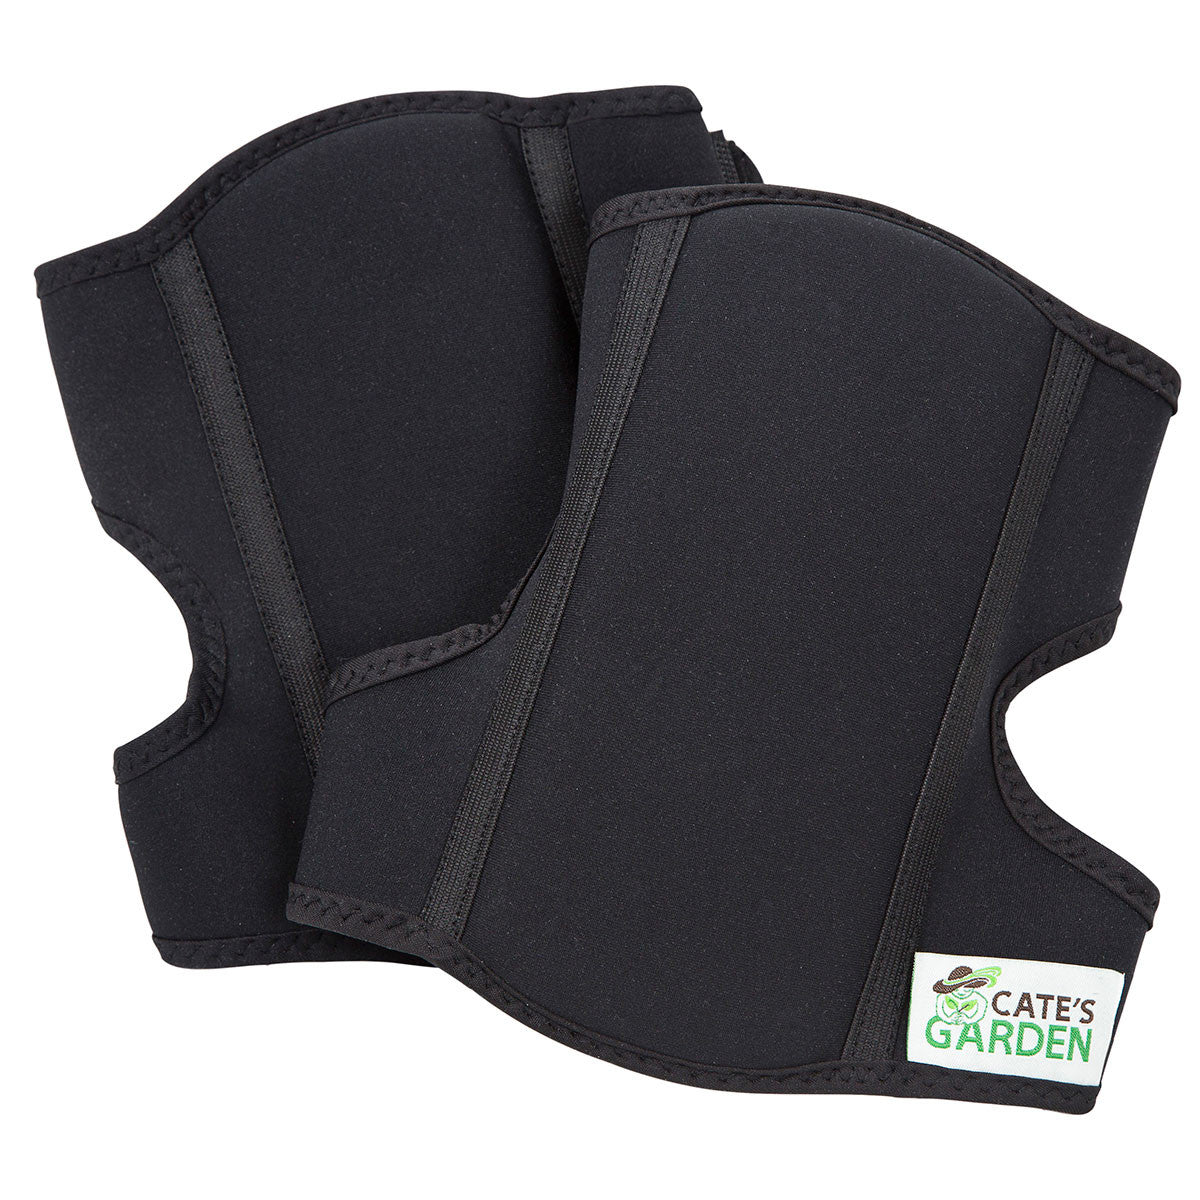 Garden Knee Pads by Cates Garden